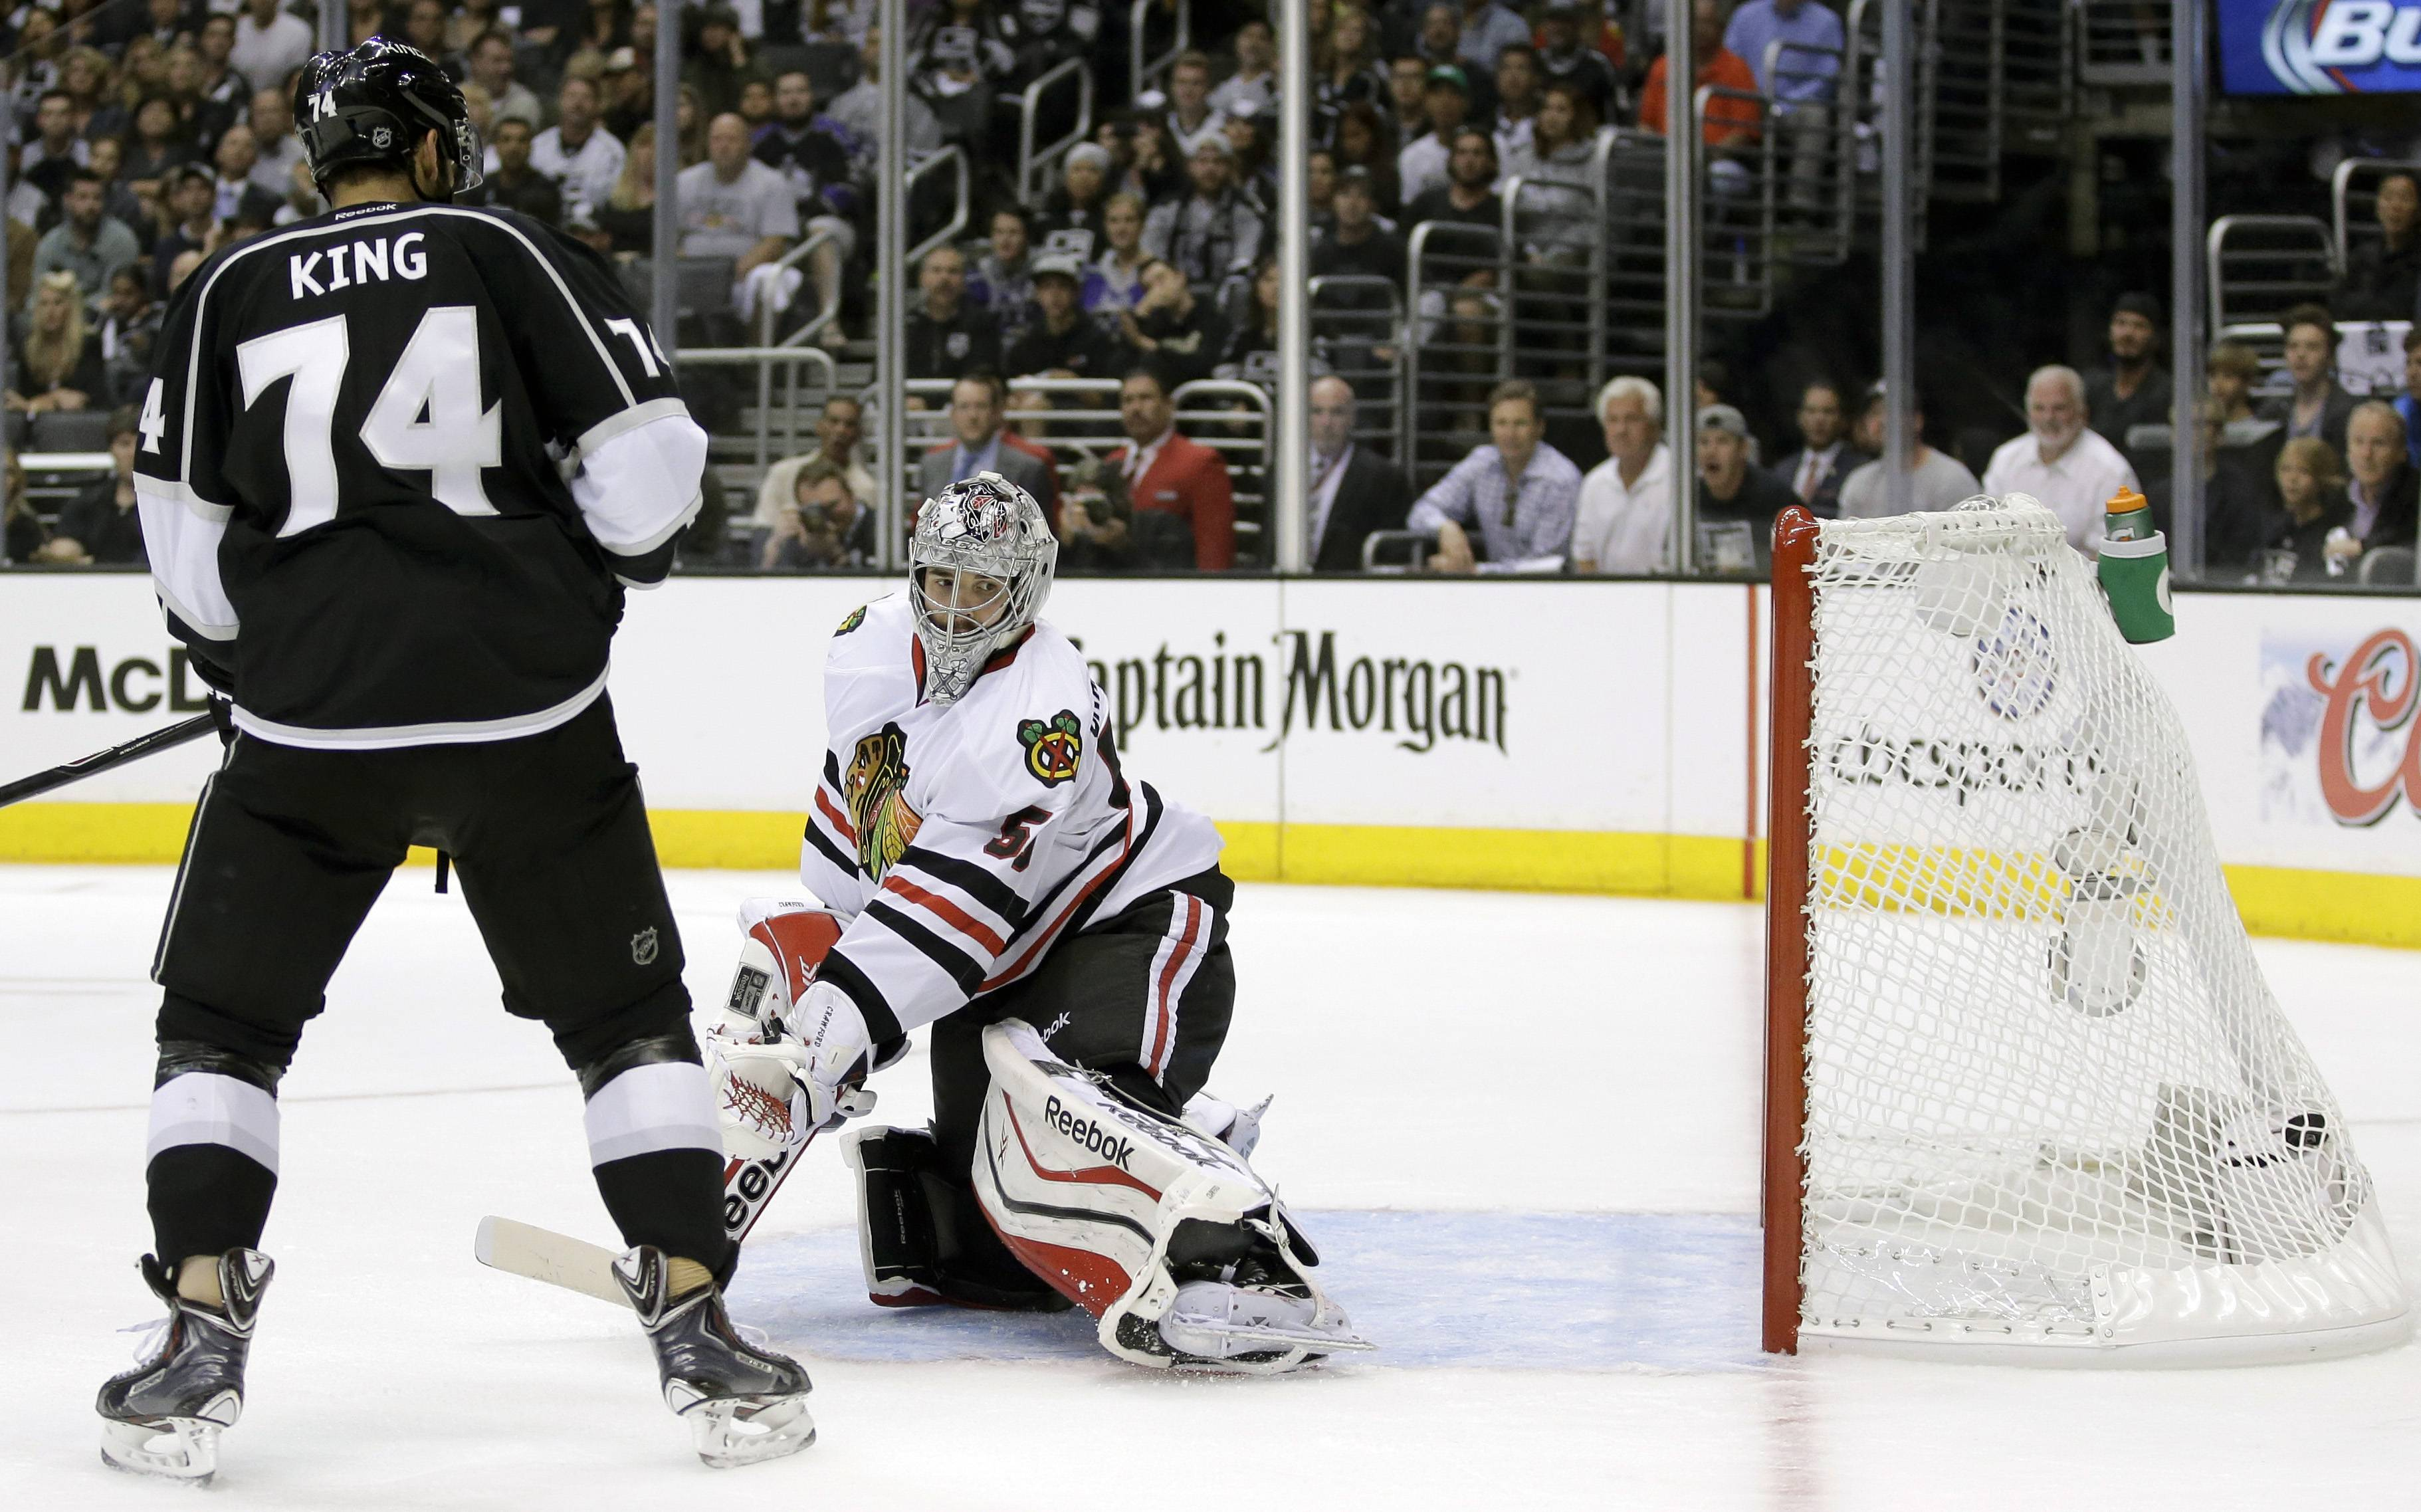 Los Angeles Kings left wing Dwight King, left, and Chicago Blackhawks goalie Corey Crawford watch defenseman Drew Doughty's goal during the second period of Game 4 of the Western Conference finals of the NHL hockey Stanley Cup playoffs in Los Angeles, Monday, May 26, 2014.